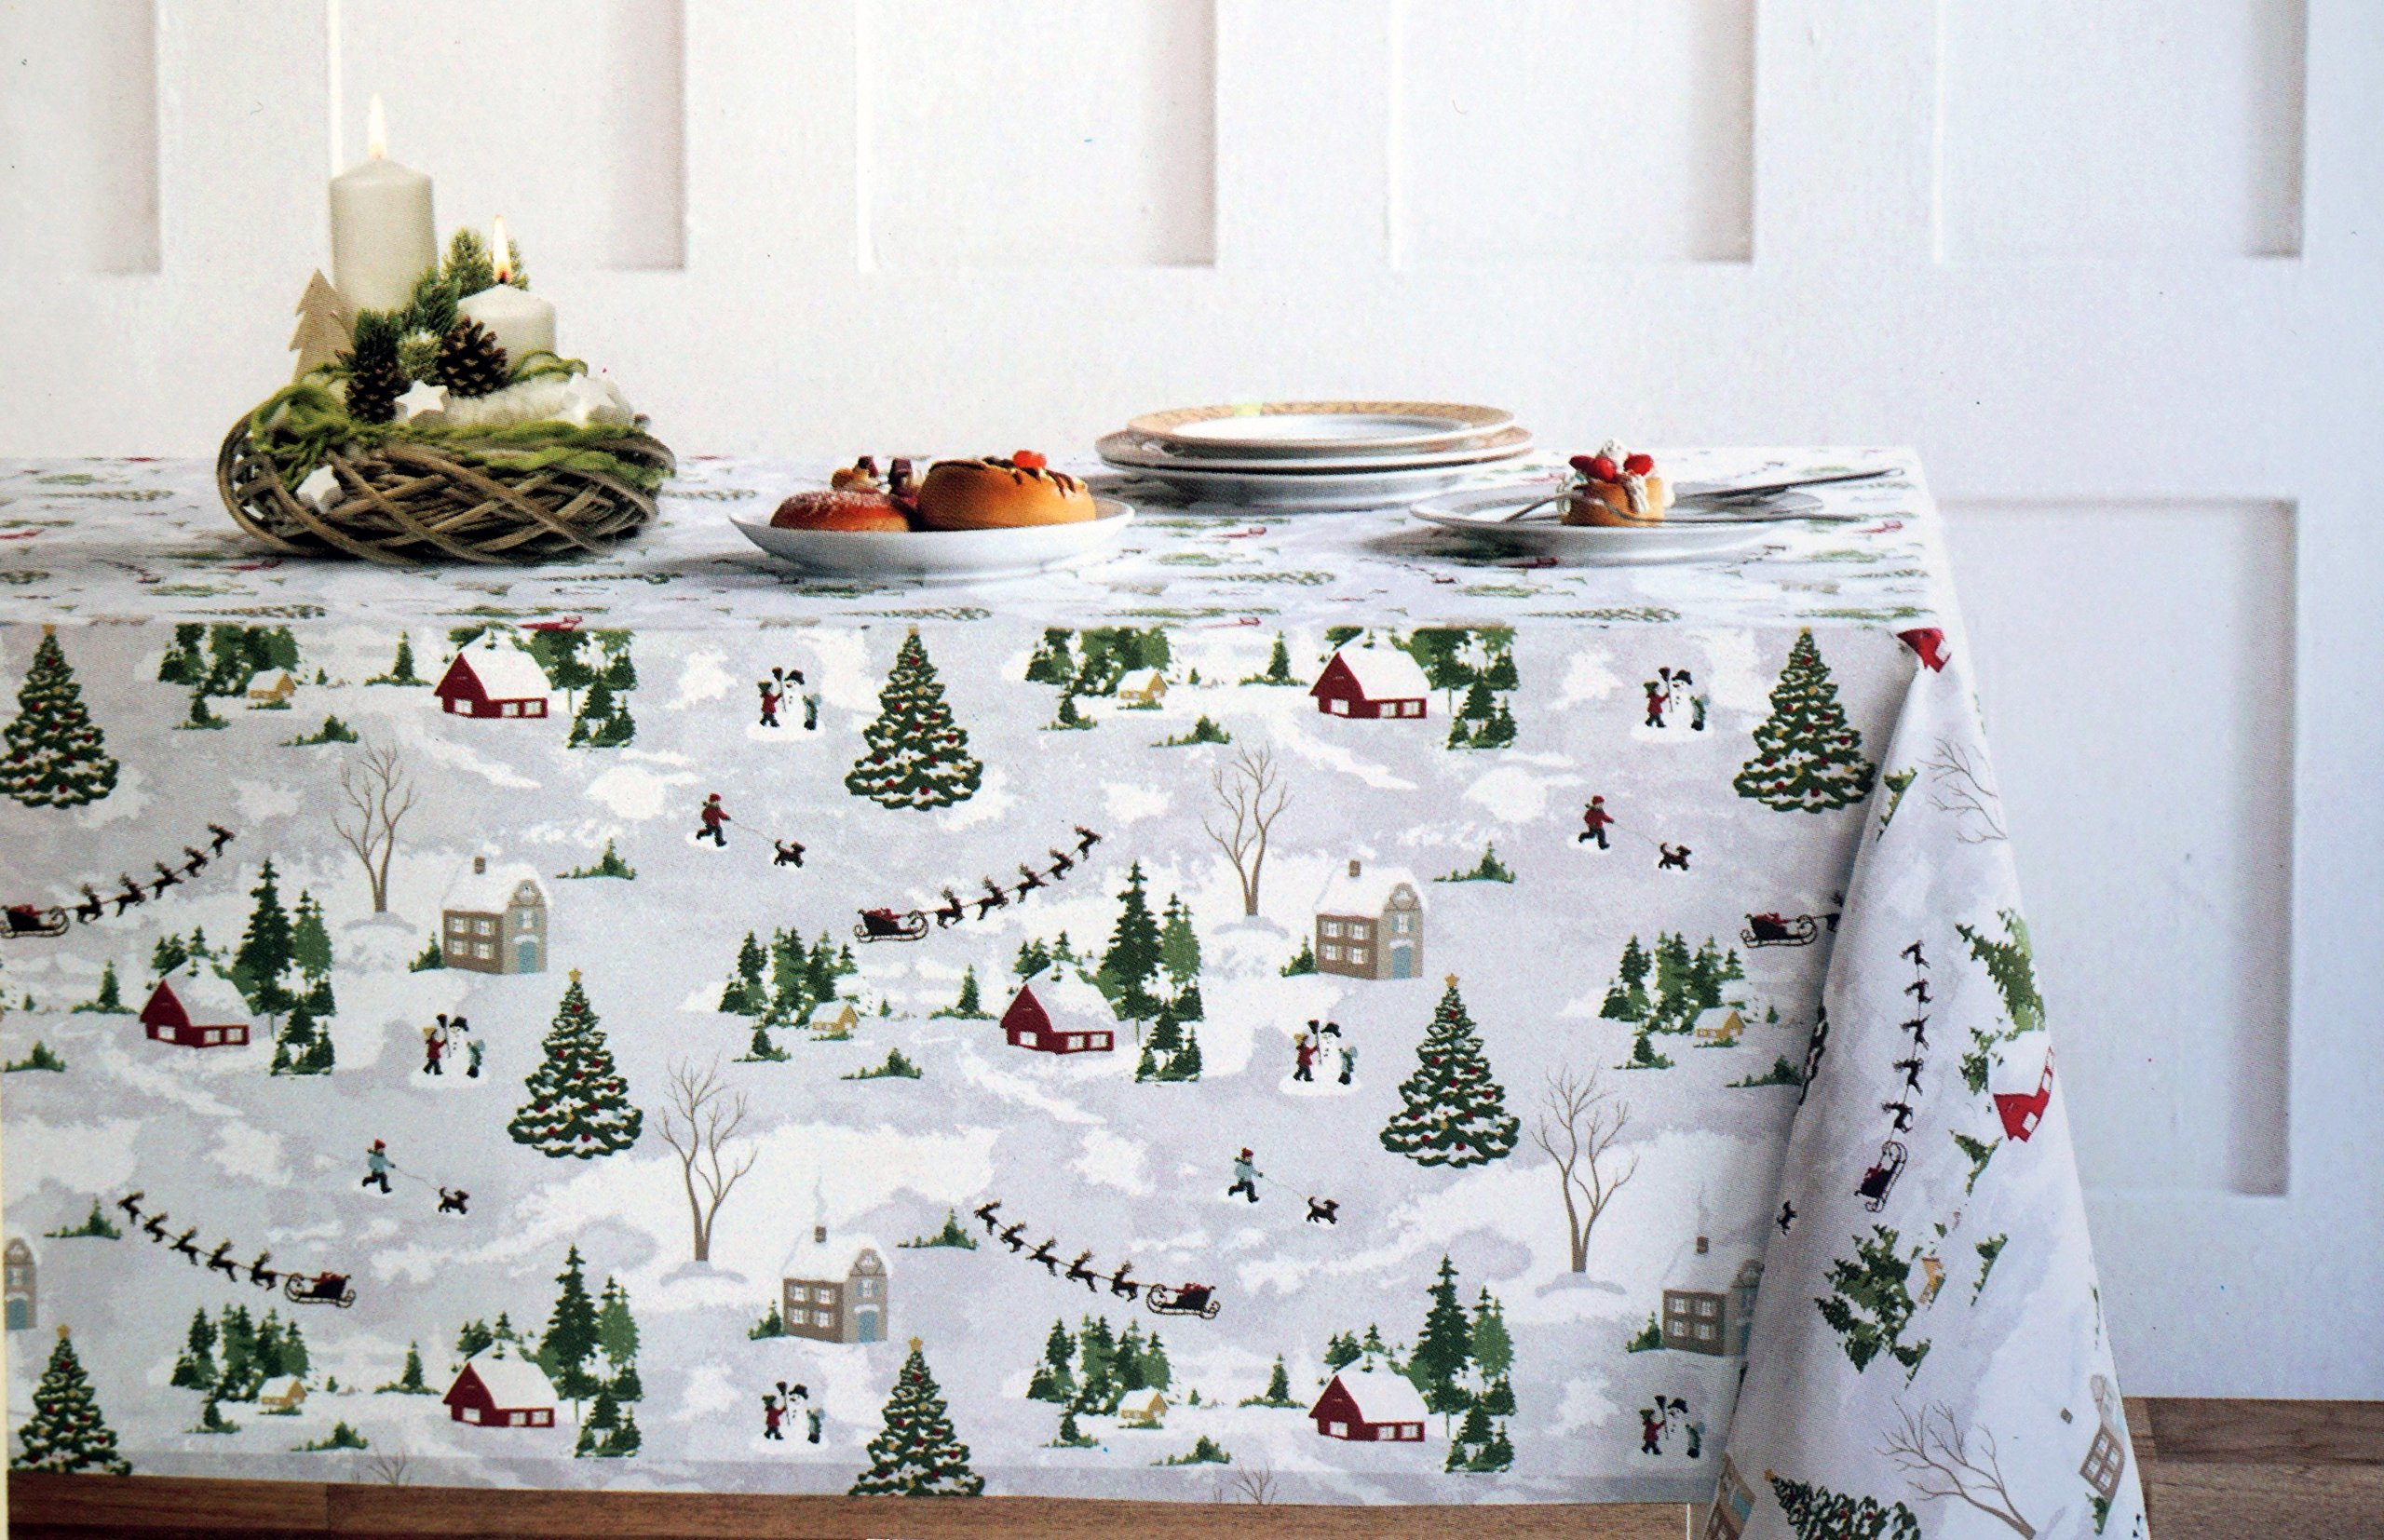 Cynthia Rowley Cotton Fabric Holiday Tablecloth Rustic Country Christmas Scene Barns Farms Reindeer Santa Sleigh Snow Men Christmas Trees - 60 Inches by 120 Inches